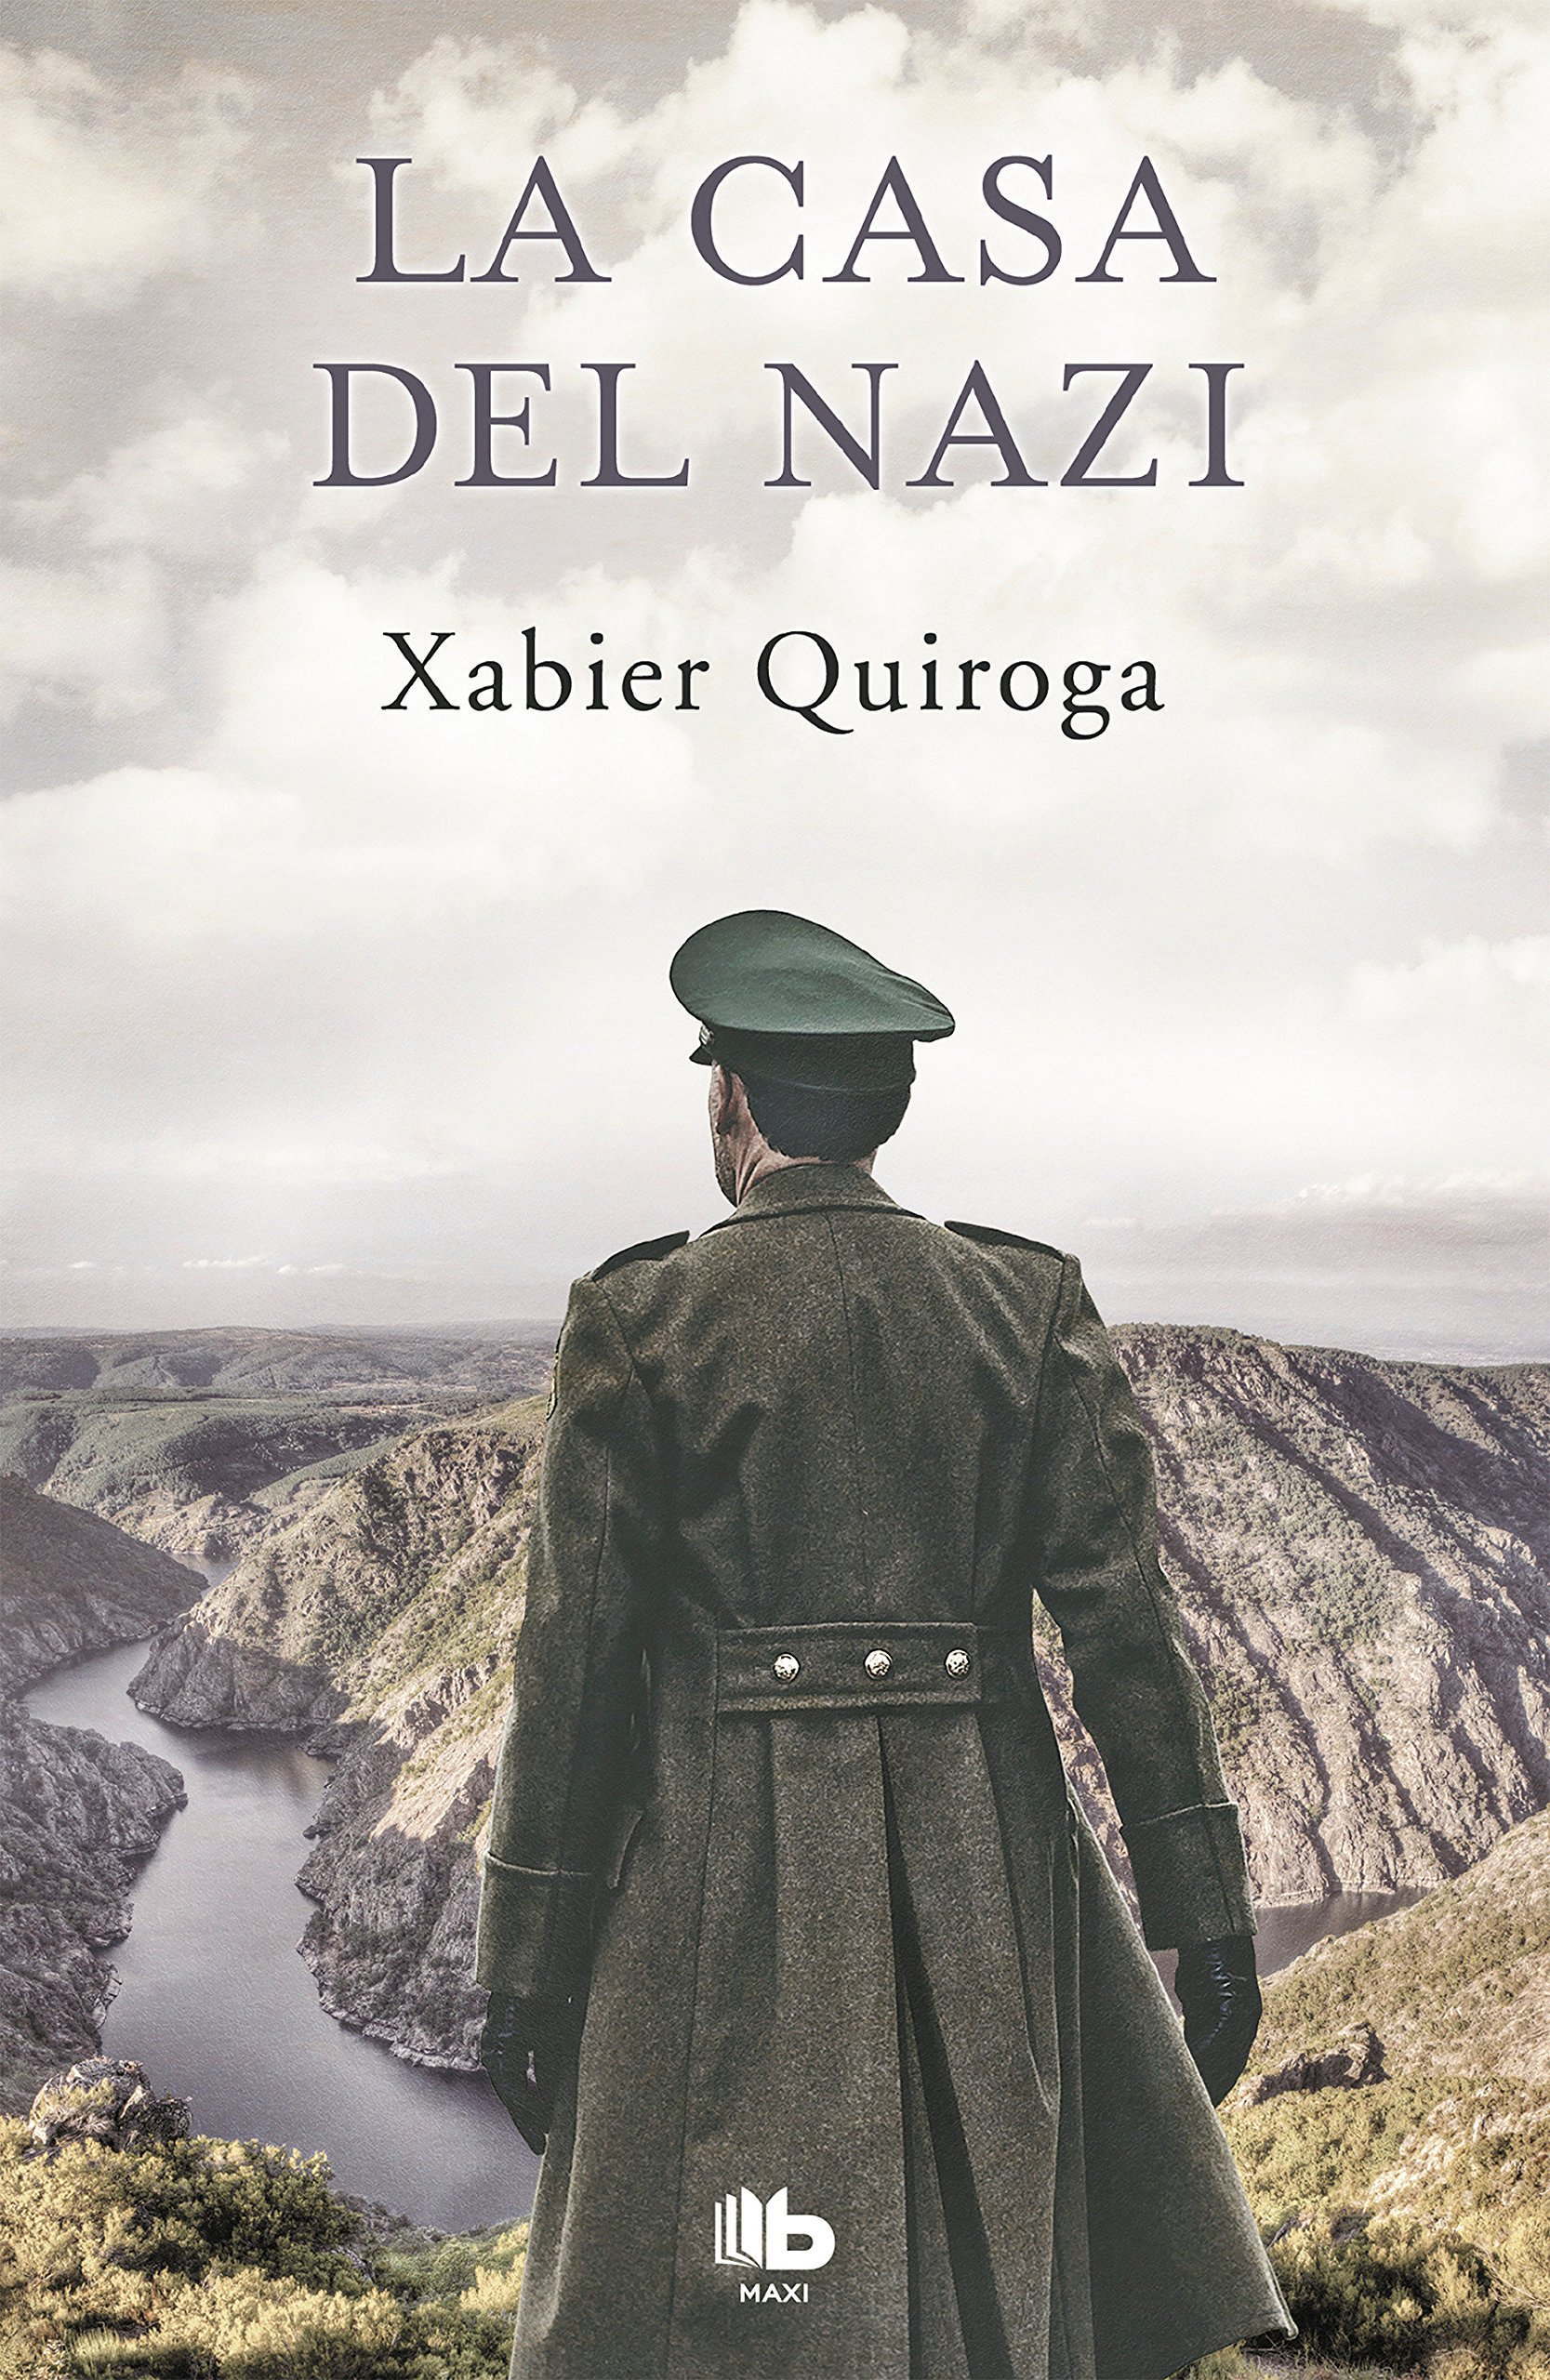 Amazon.com: La casa del nazi / The Nazis House (Spanish Edition) (9788490705490): Xabier Quiroga: Books